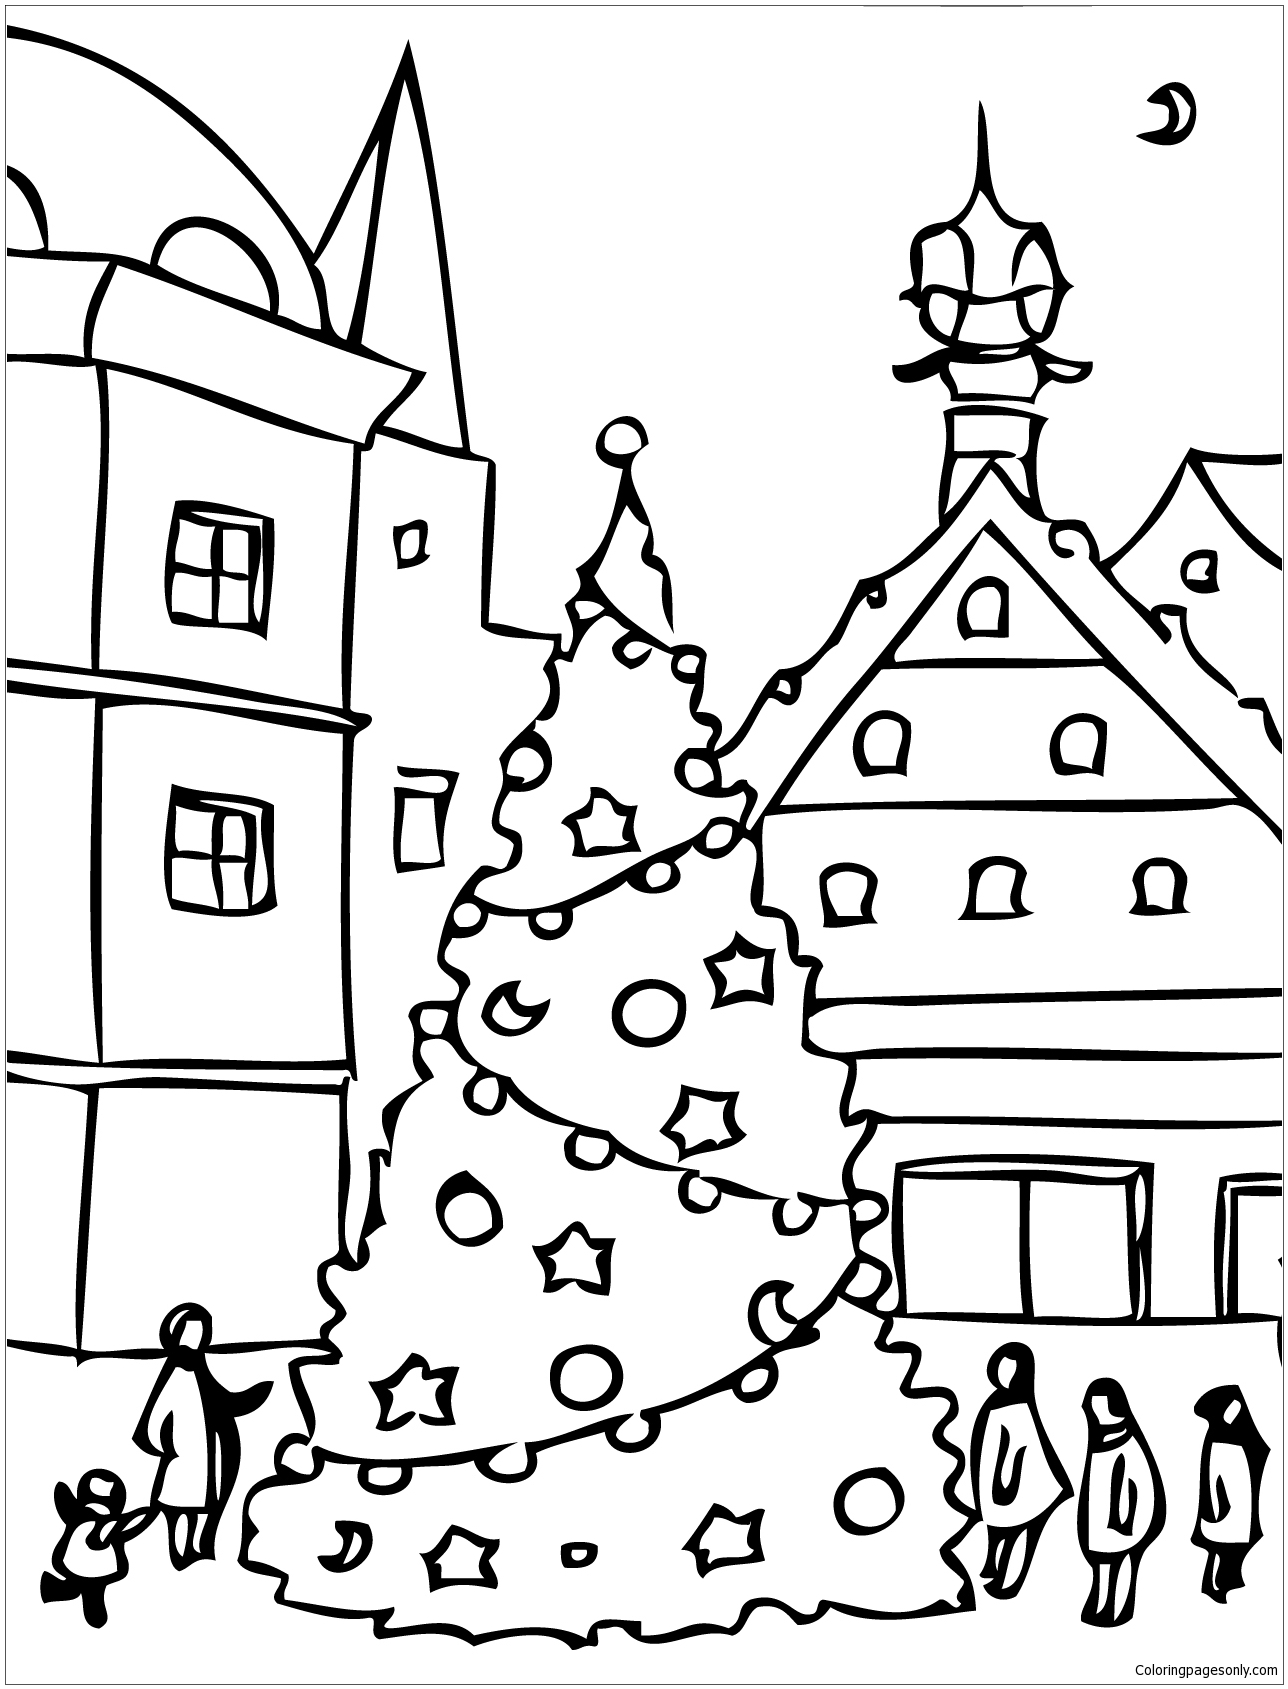 Christmas Day Coloring Page Free Coloring Pages Online